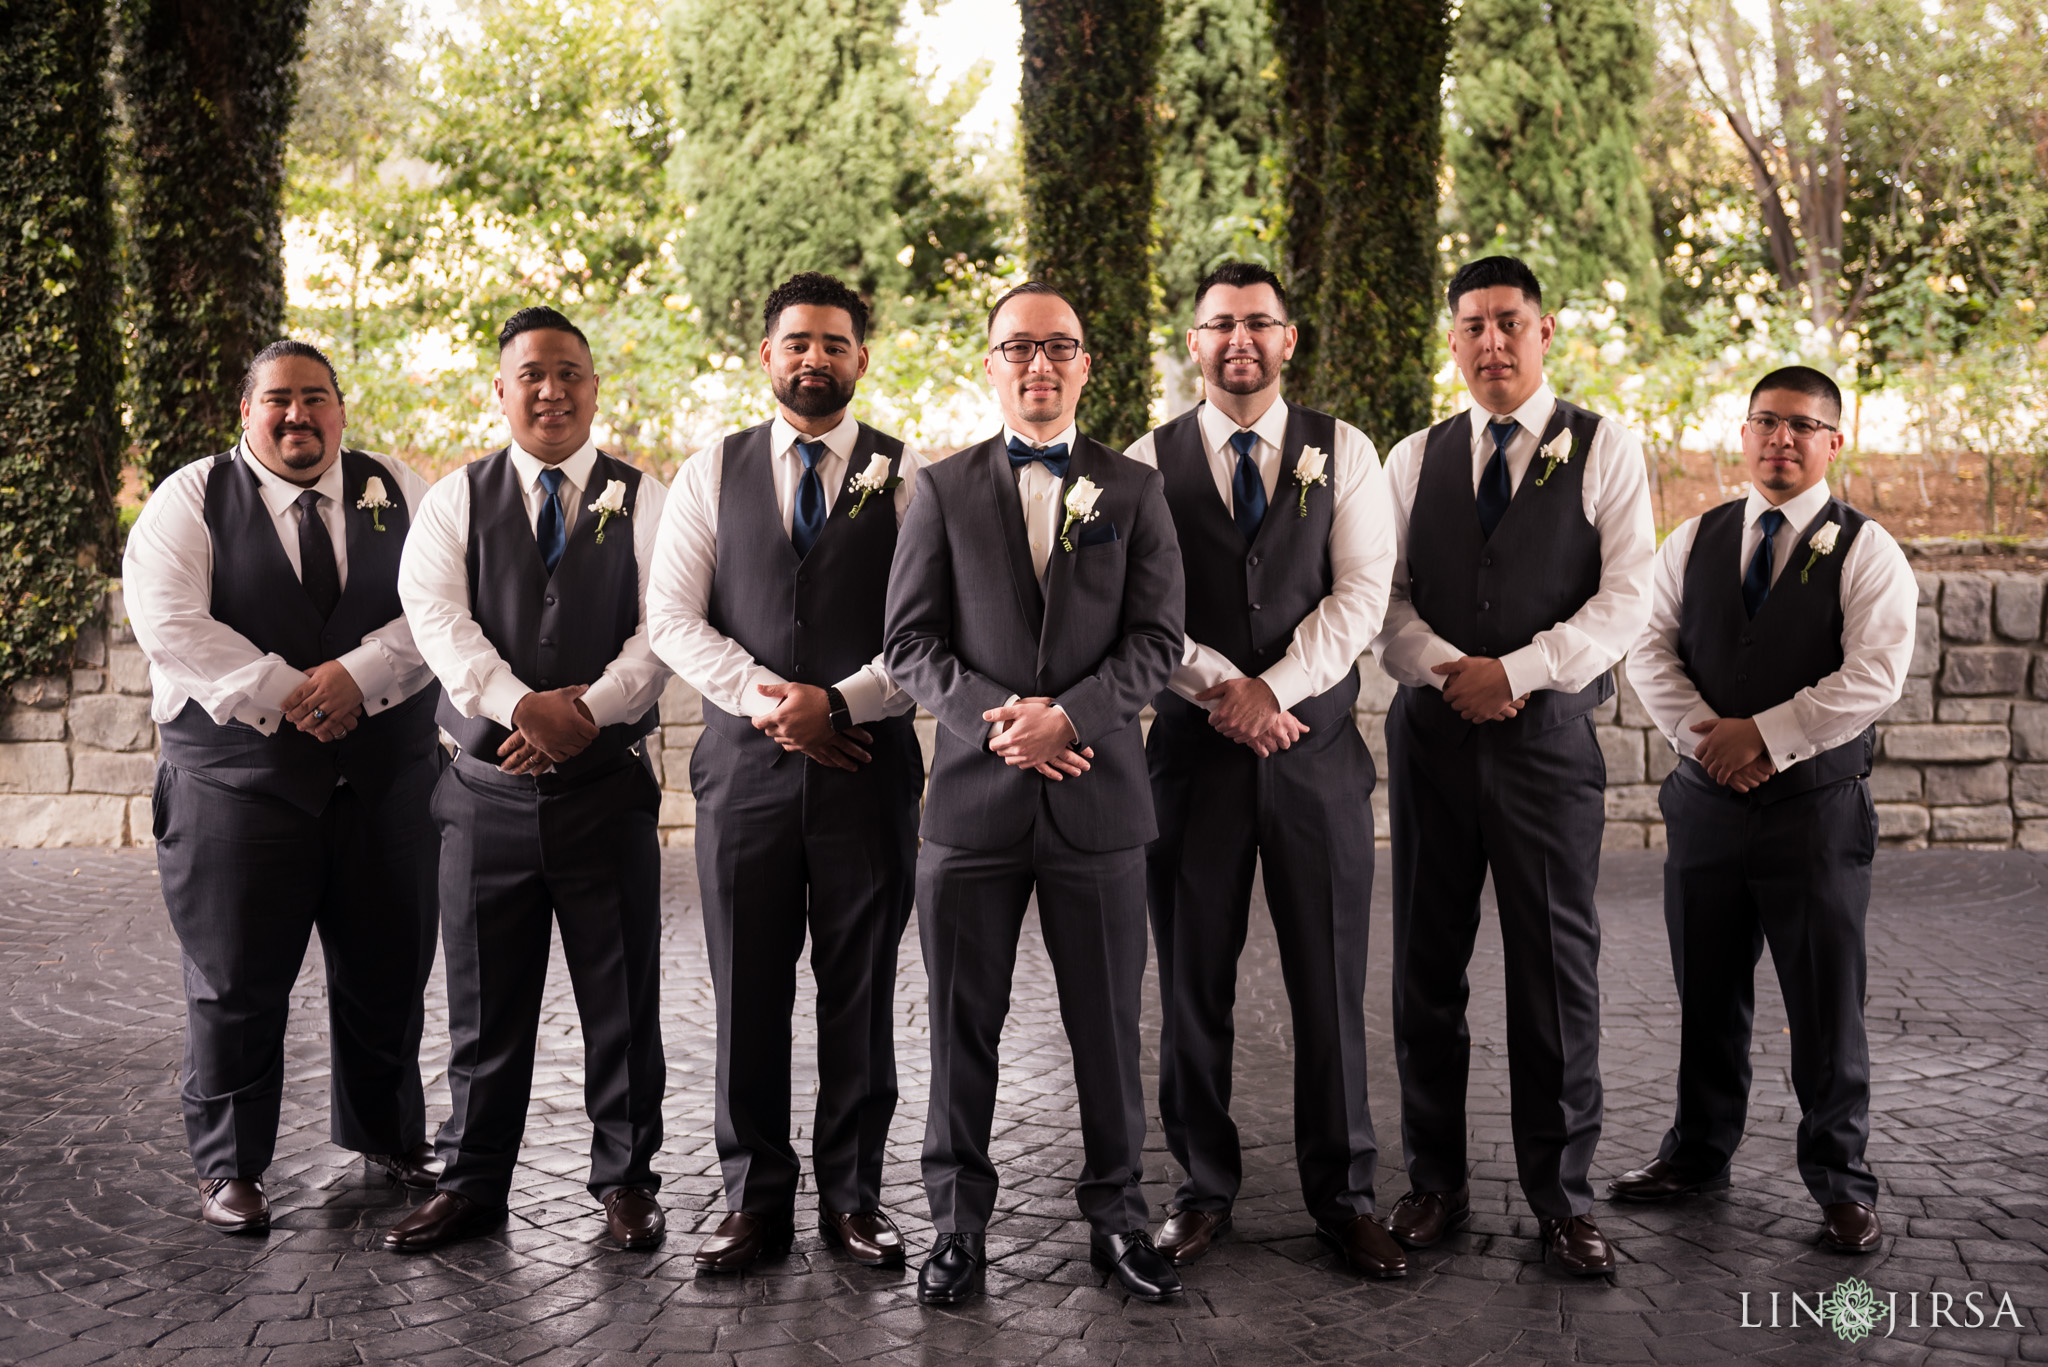 15 turnip rose promenade orange county groom wedding photography